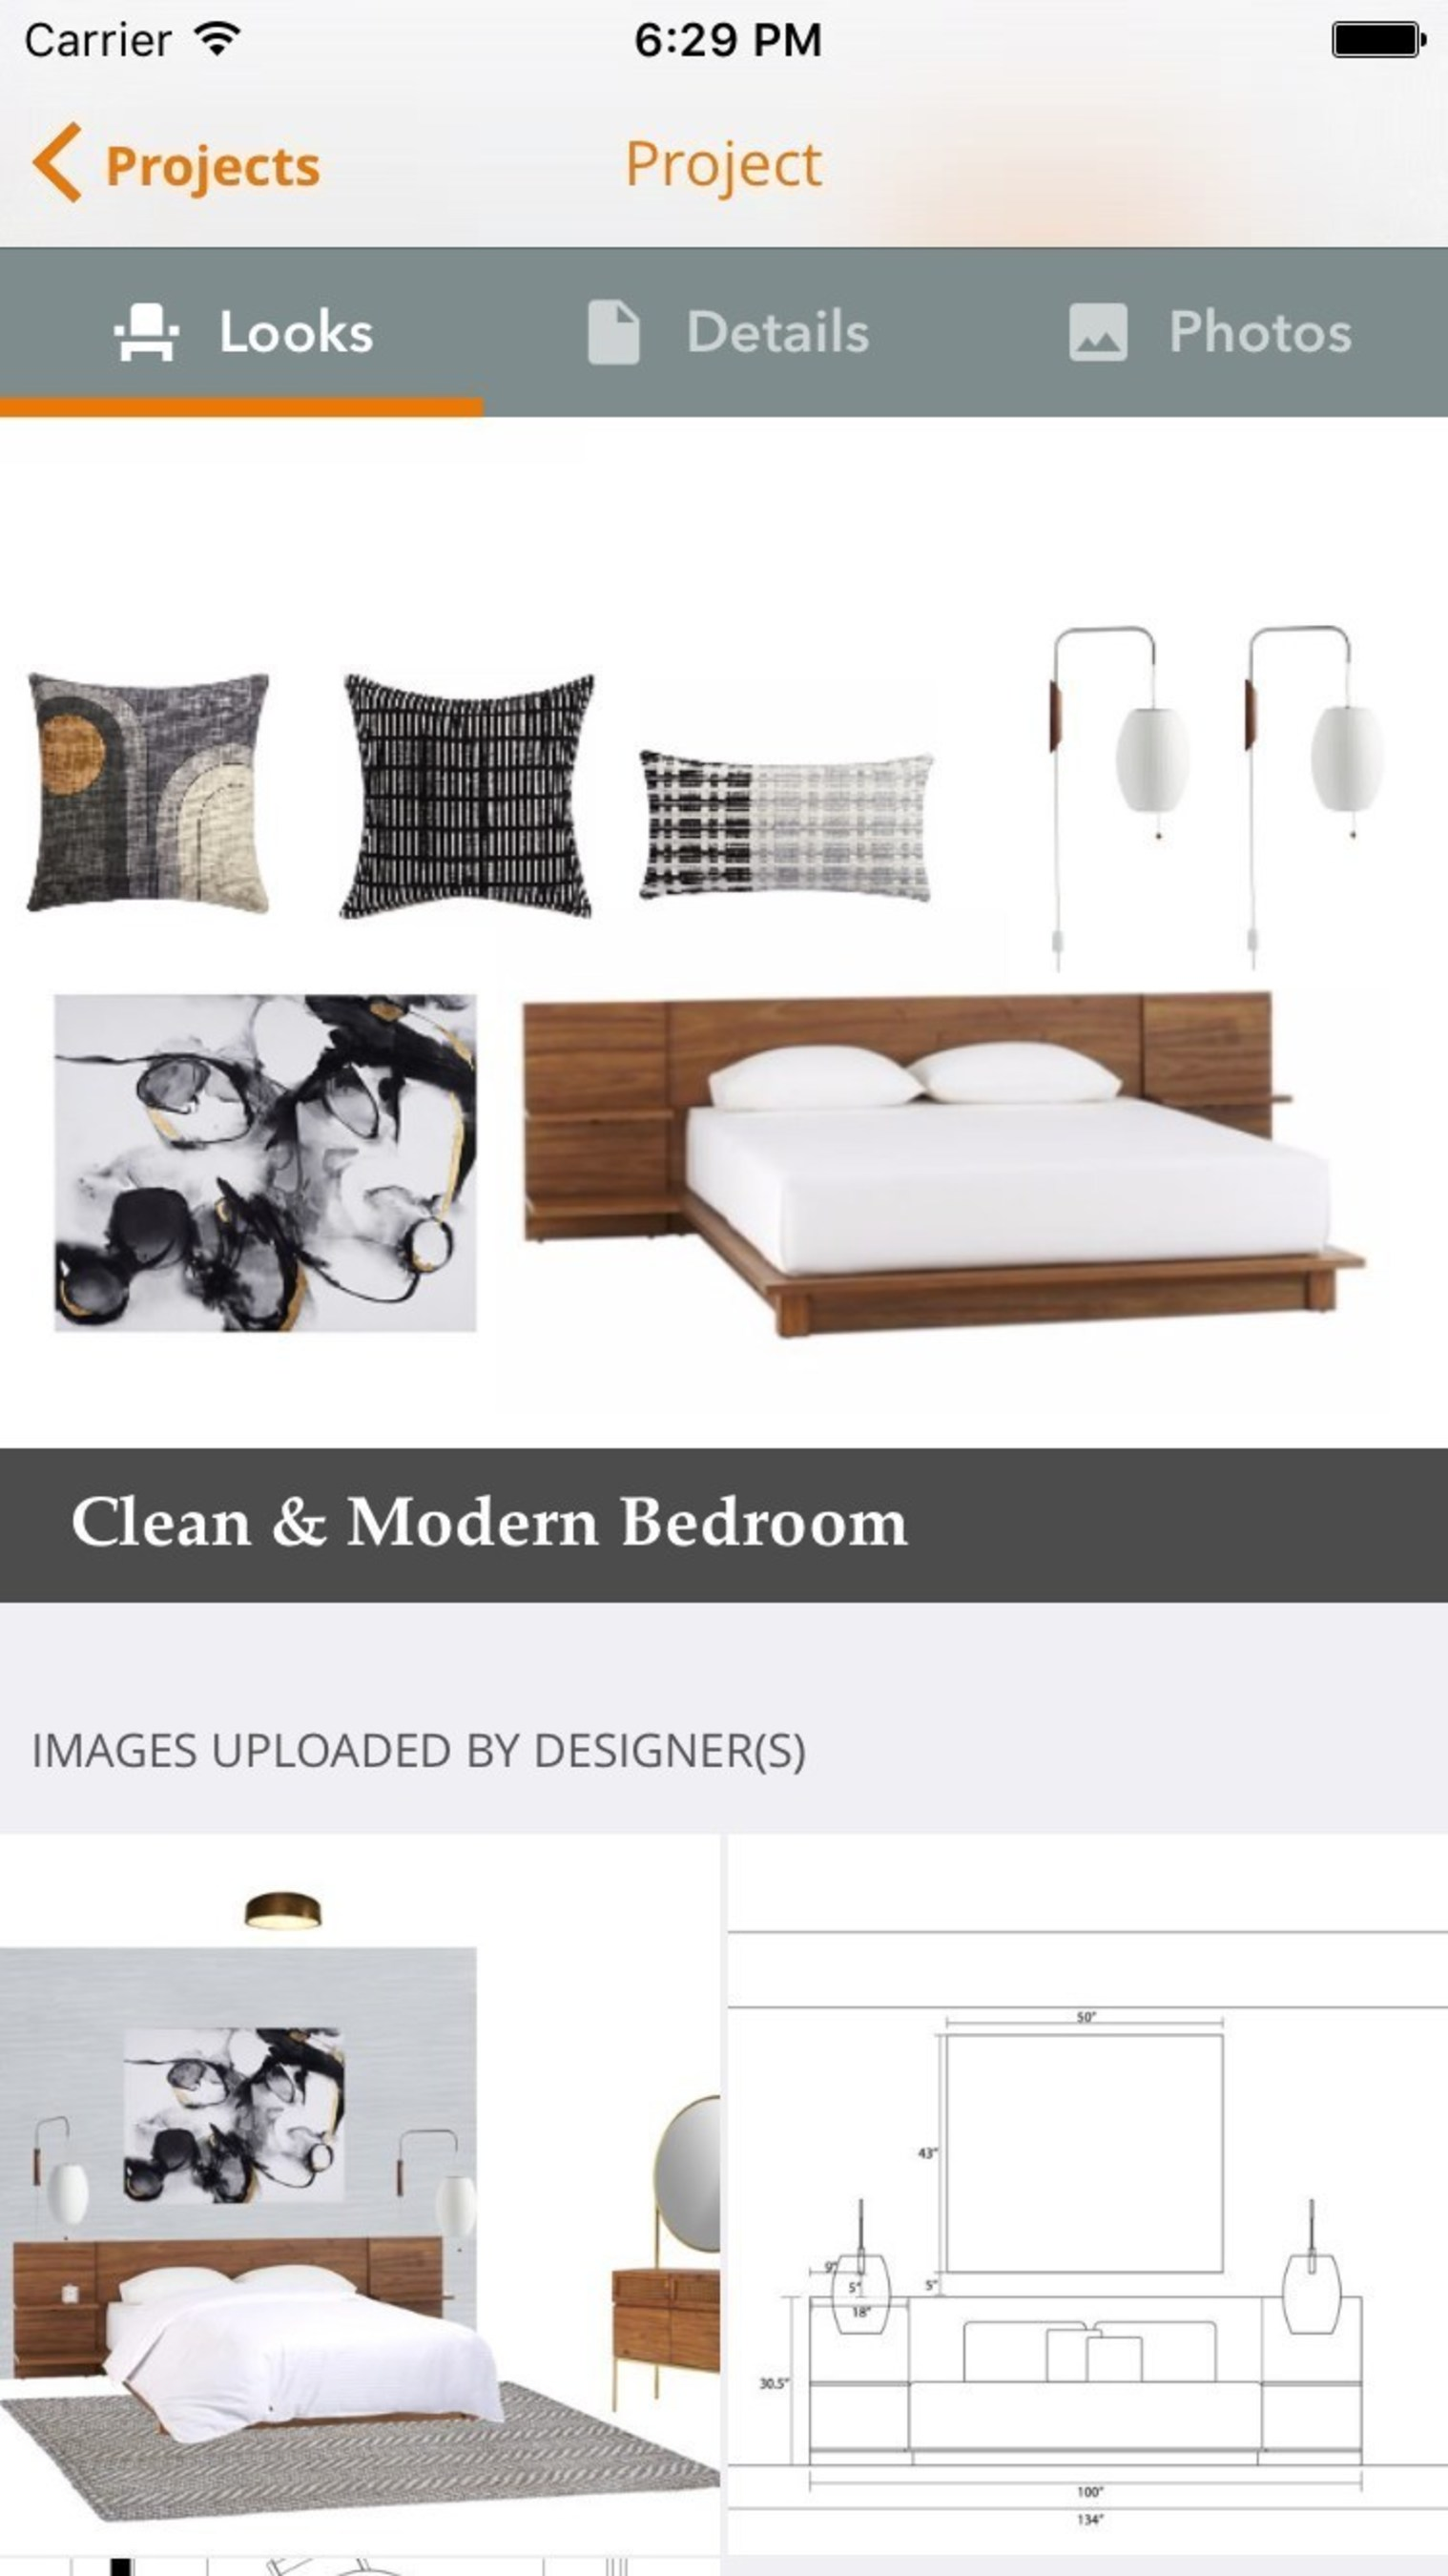 On The NousDecor App, A User Can Review Completed Looks, 3D Renderings,  Design